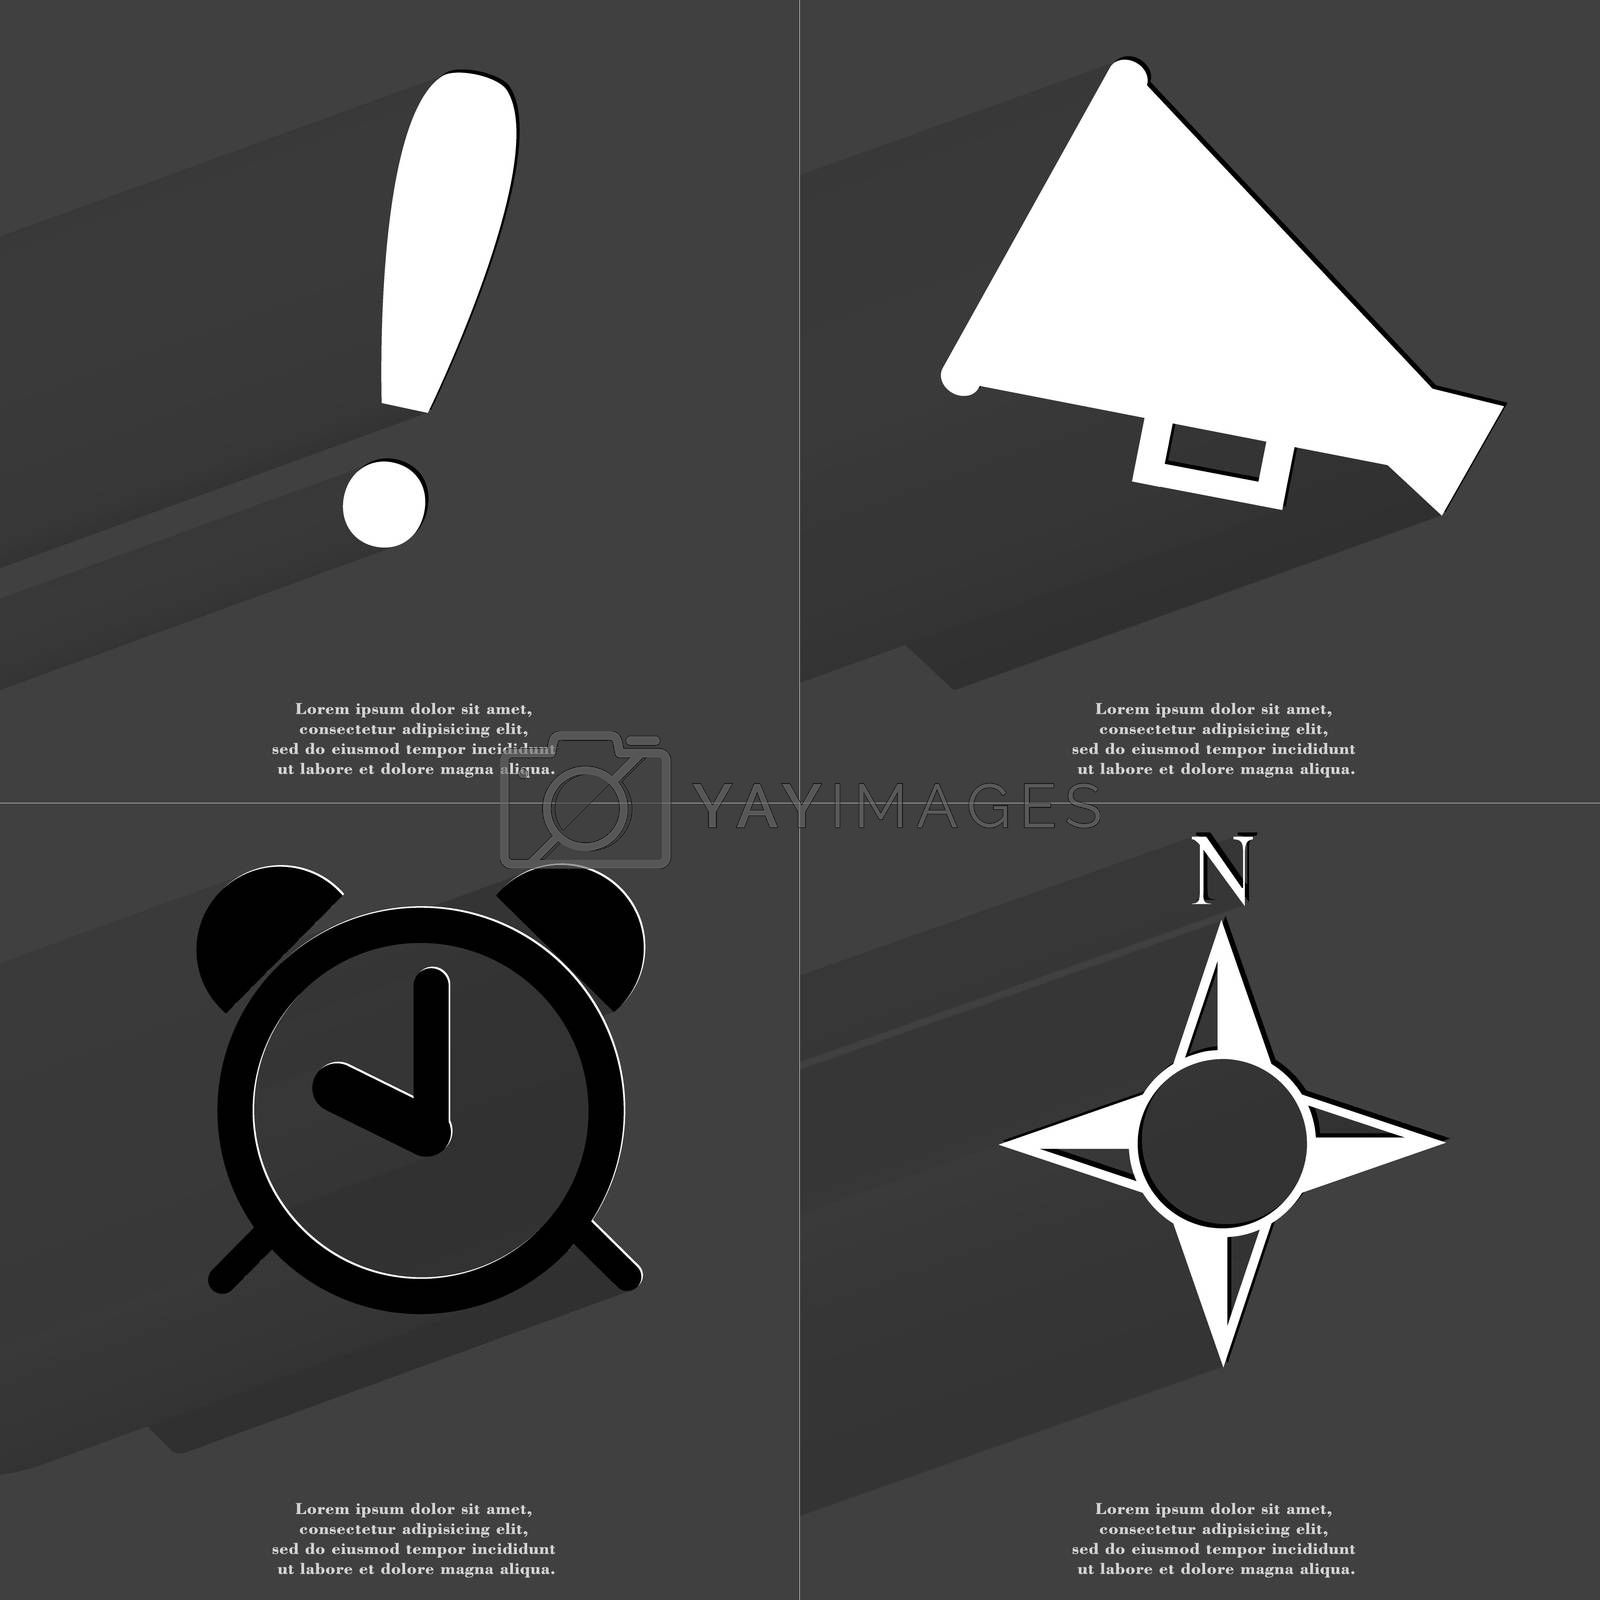 Royalty free image of Exclamation mark, Megaphone, Alarm clock, Compass. Symbols with long shadow. Flat design by serhii_lohvyniuk